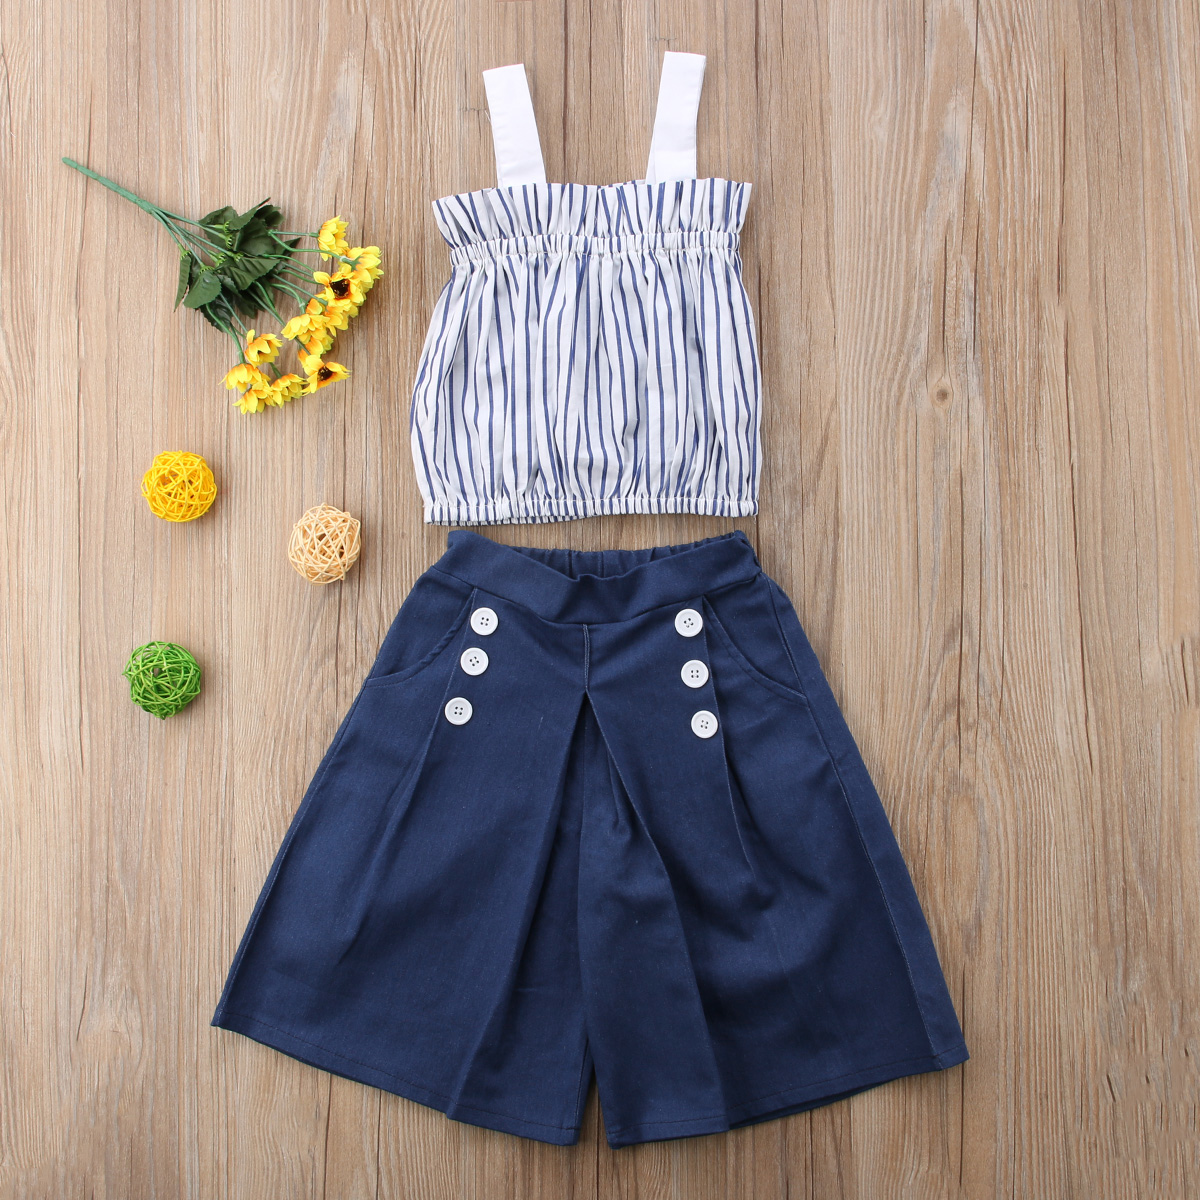 USA Toddler Baby Girl Vertical Striped Sleeveless Tops+Denim Loose Pocket Buttons Pants Jeans 2Pcs Clothes